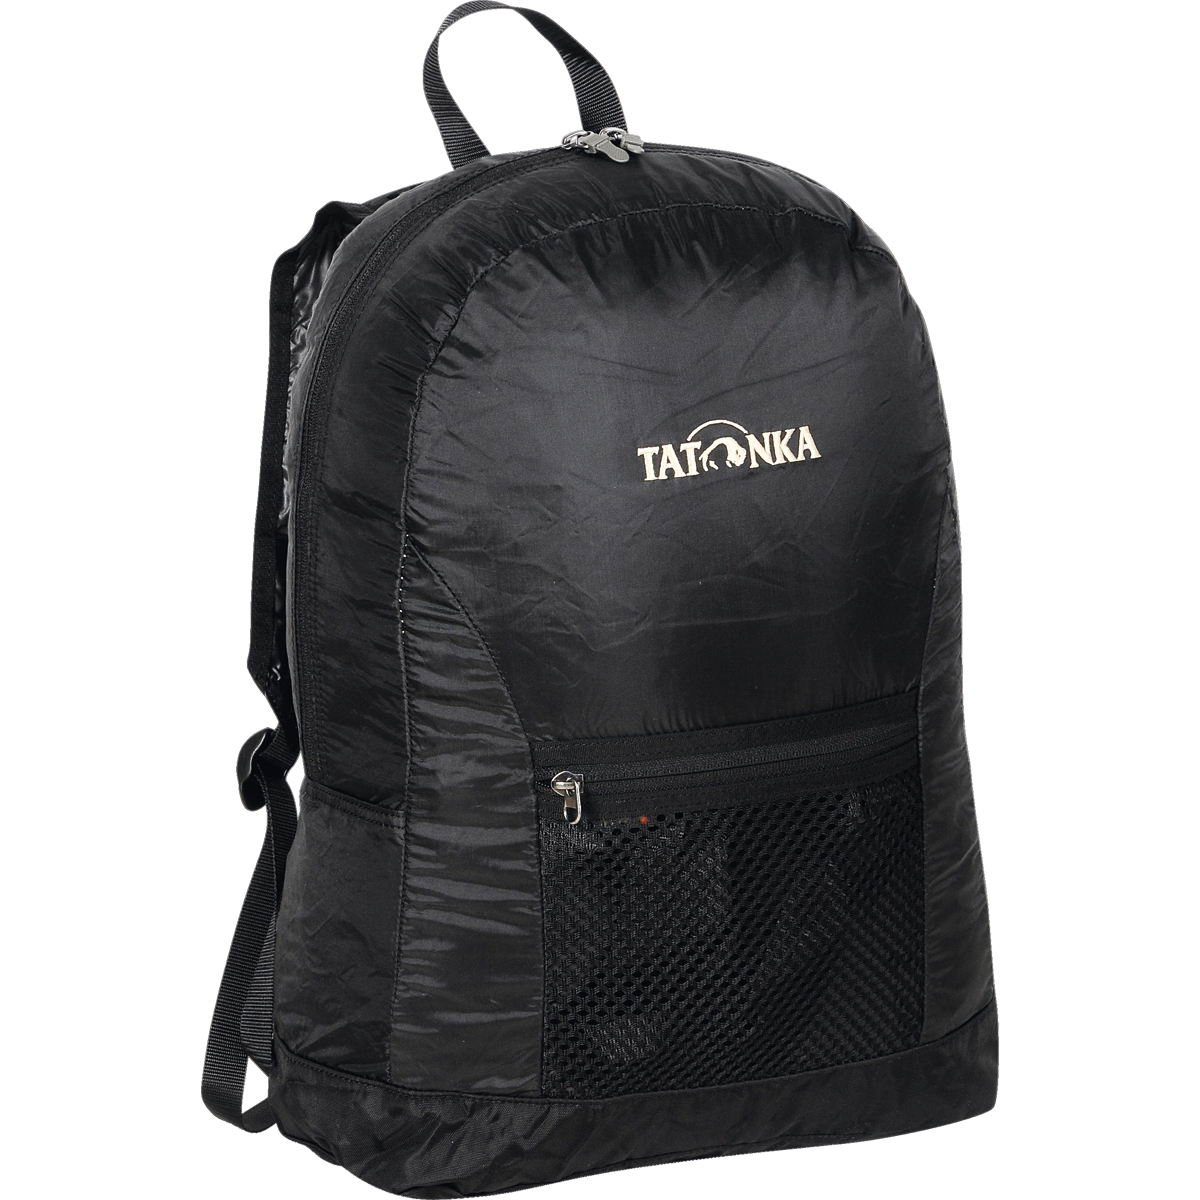 Tatonka Superlight black-30